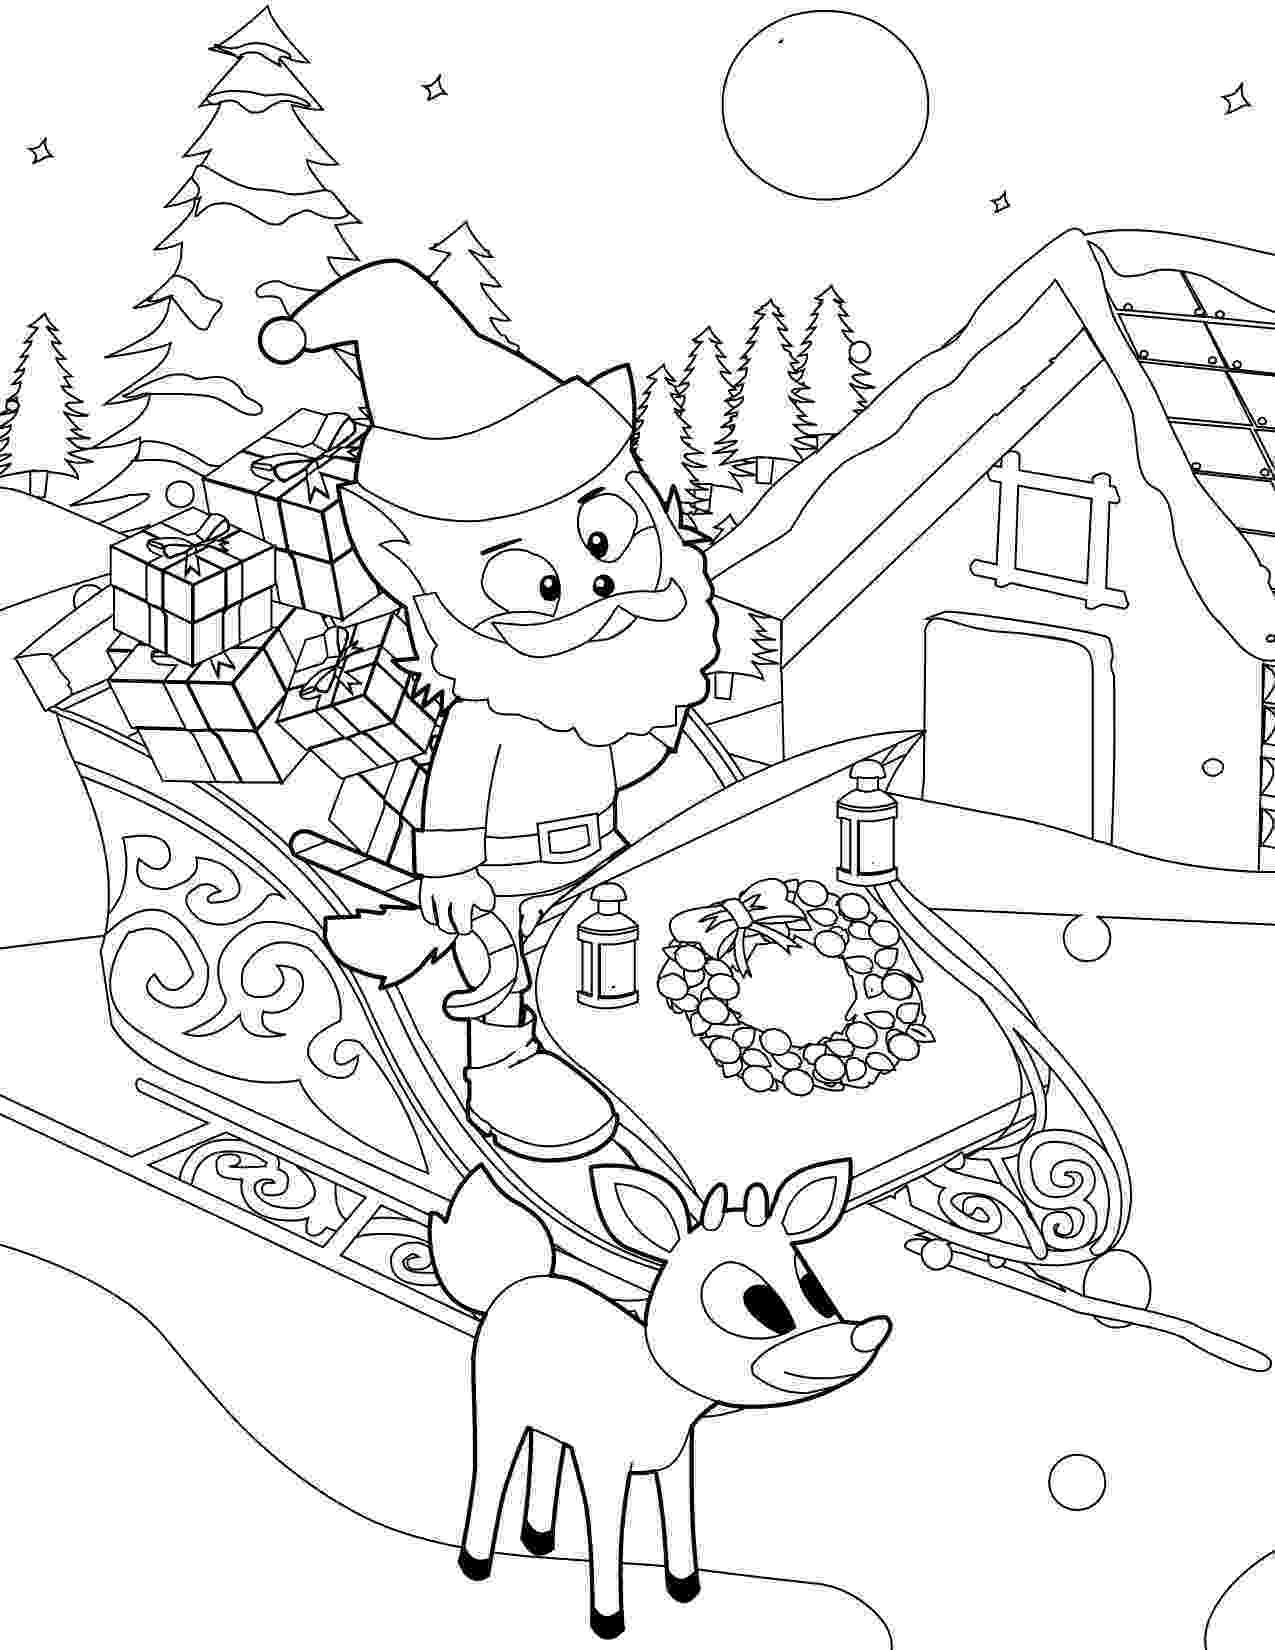 winter wonderland coloring pages becca allred graphics winter wonderland winter wonderland coloring pages